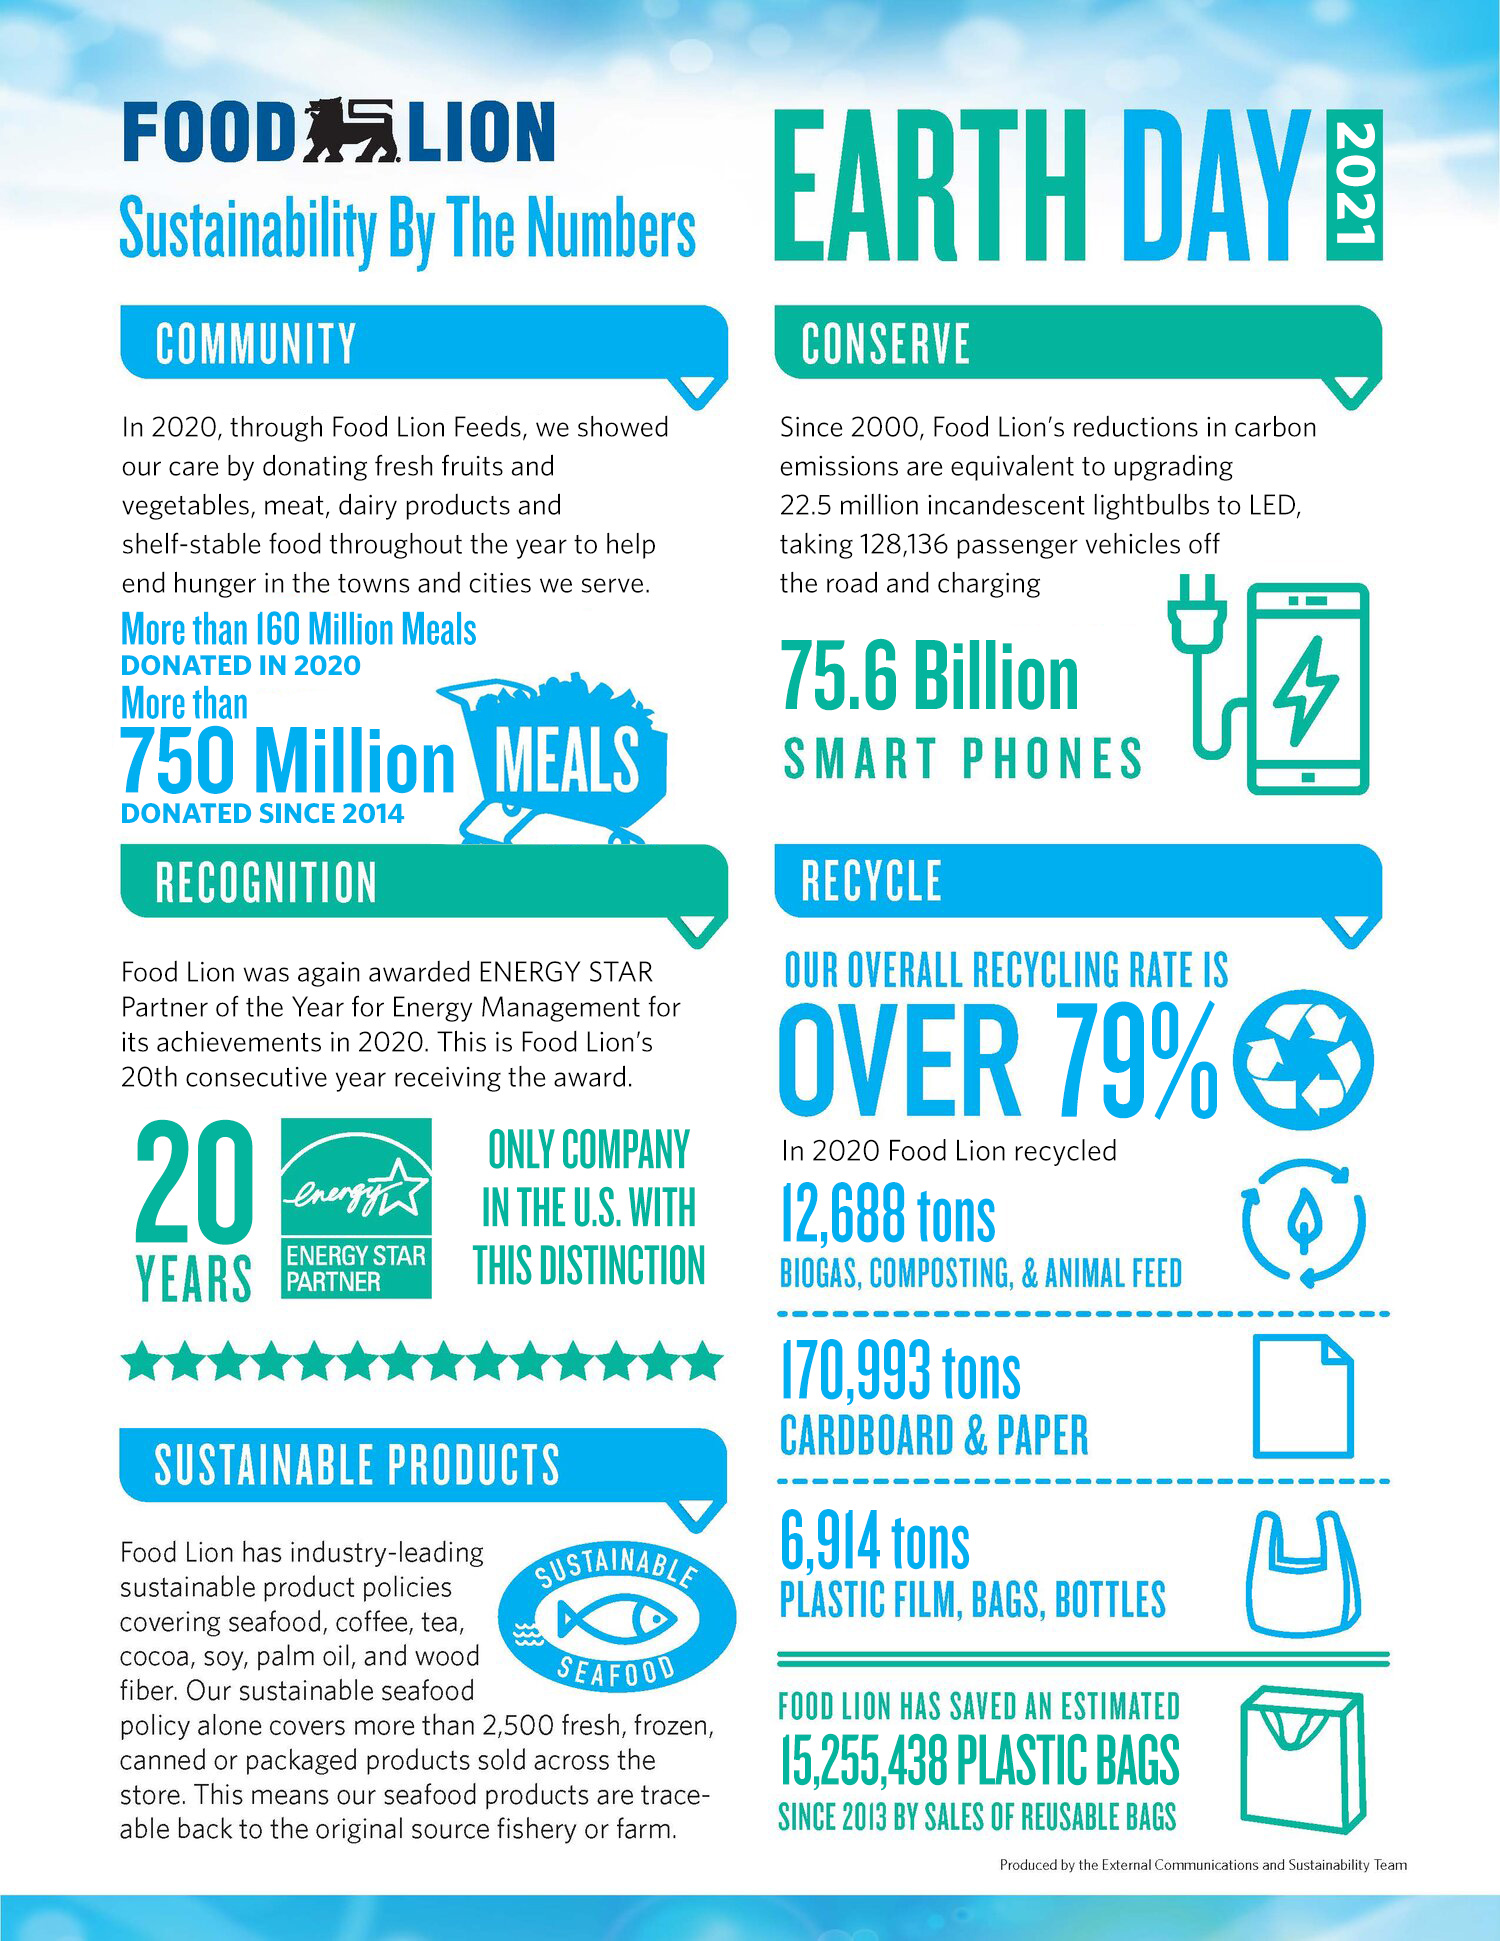 Food Lion Sustainability by the numbers infographic , we donated more than 750 million meals since 2014, energy star partner for 19 years - only company in the us with that distinction, sustainable product policies covering seafood coffee tea soy palm oil and wood, Food Lions reduction in carbon since 2000 equivalent to powering 75.6 million smart phones, 79$ recycling rate, our reusable bags have saved an estimated 15 million plus in  plastic bags